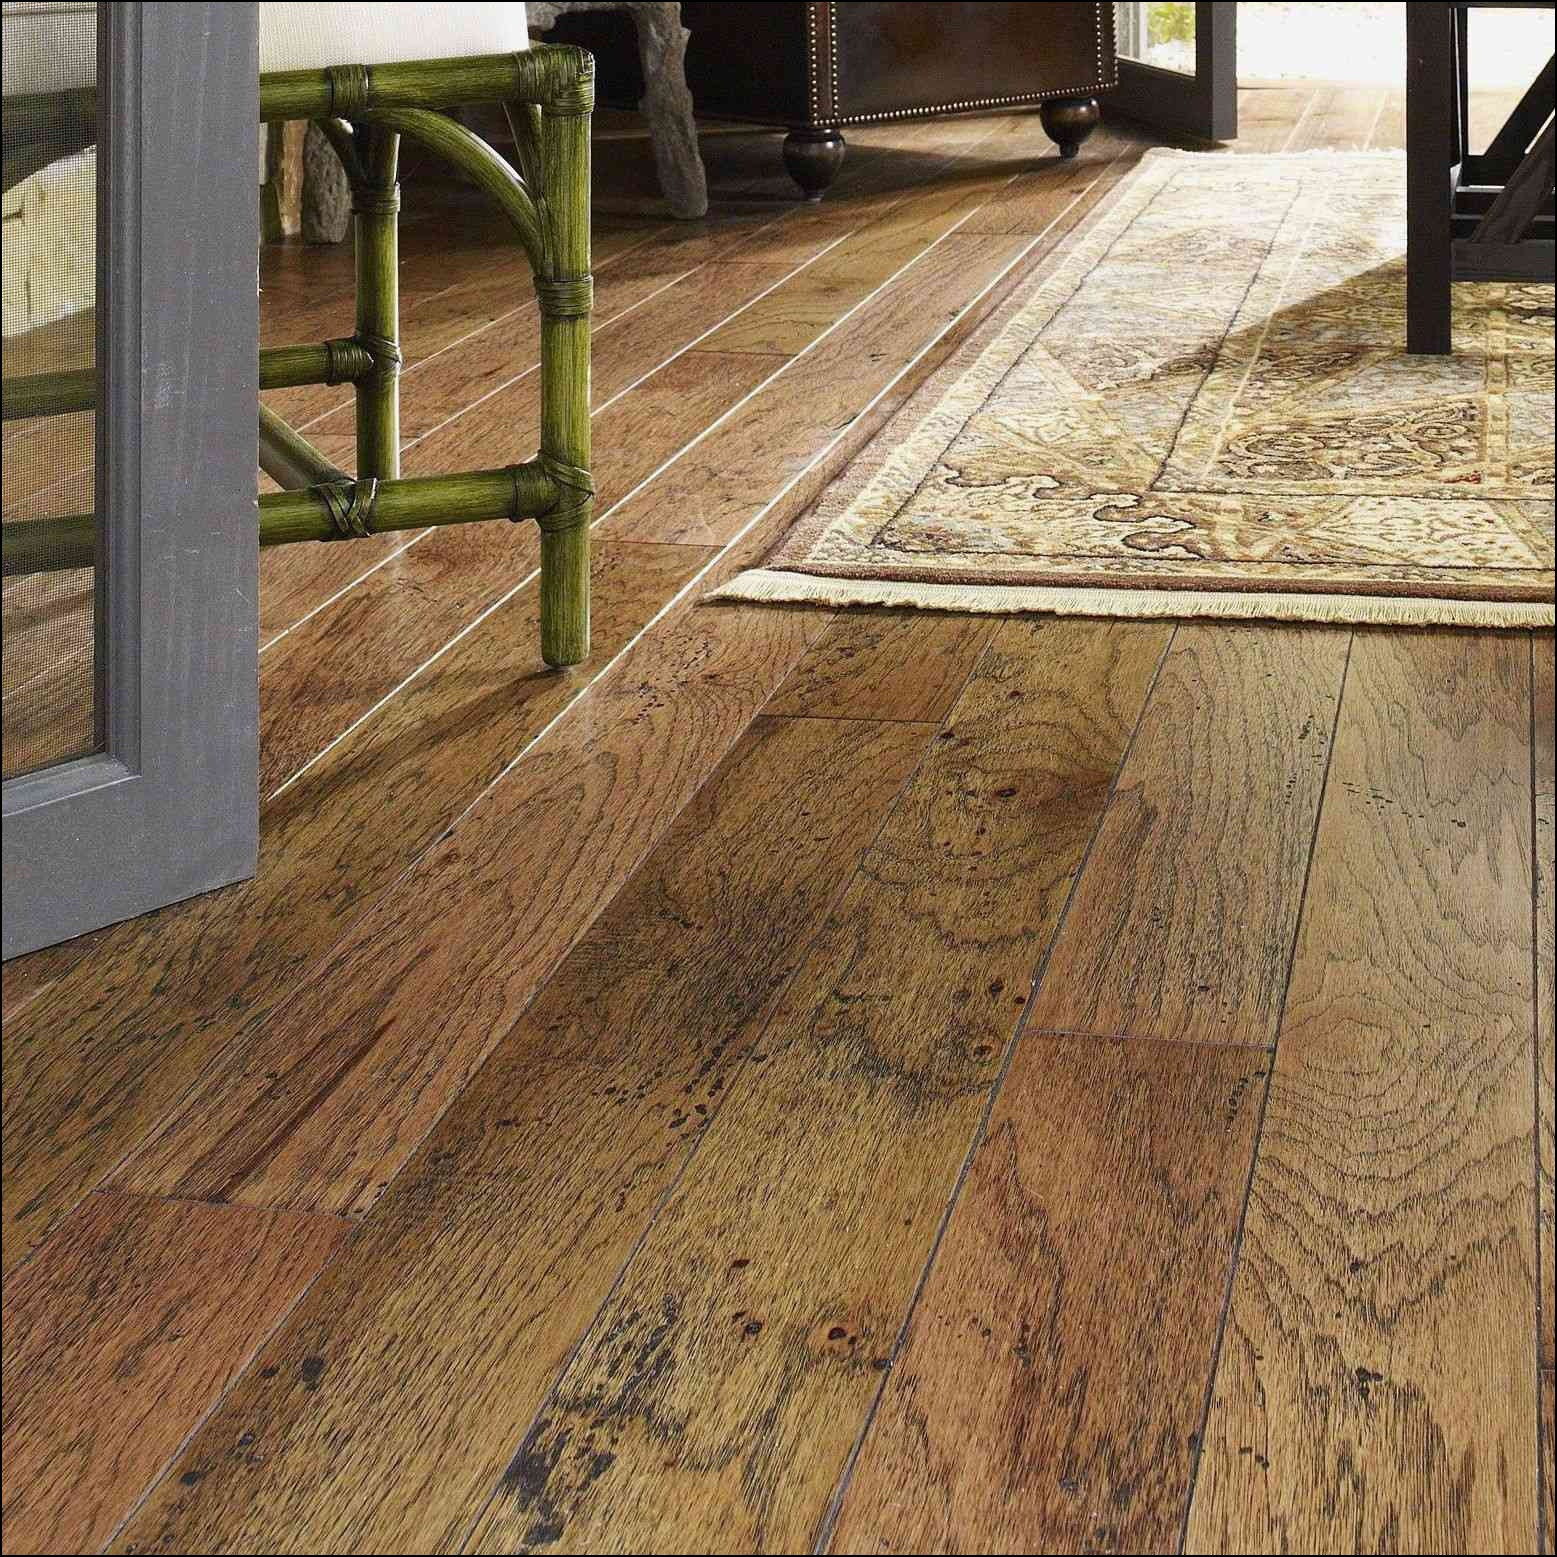 lowes hardwood floor transition of what is flooring ideas inside what is the best gym flooring images best type wood flooring best floor floor wood floor